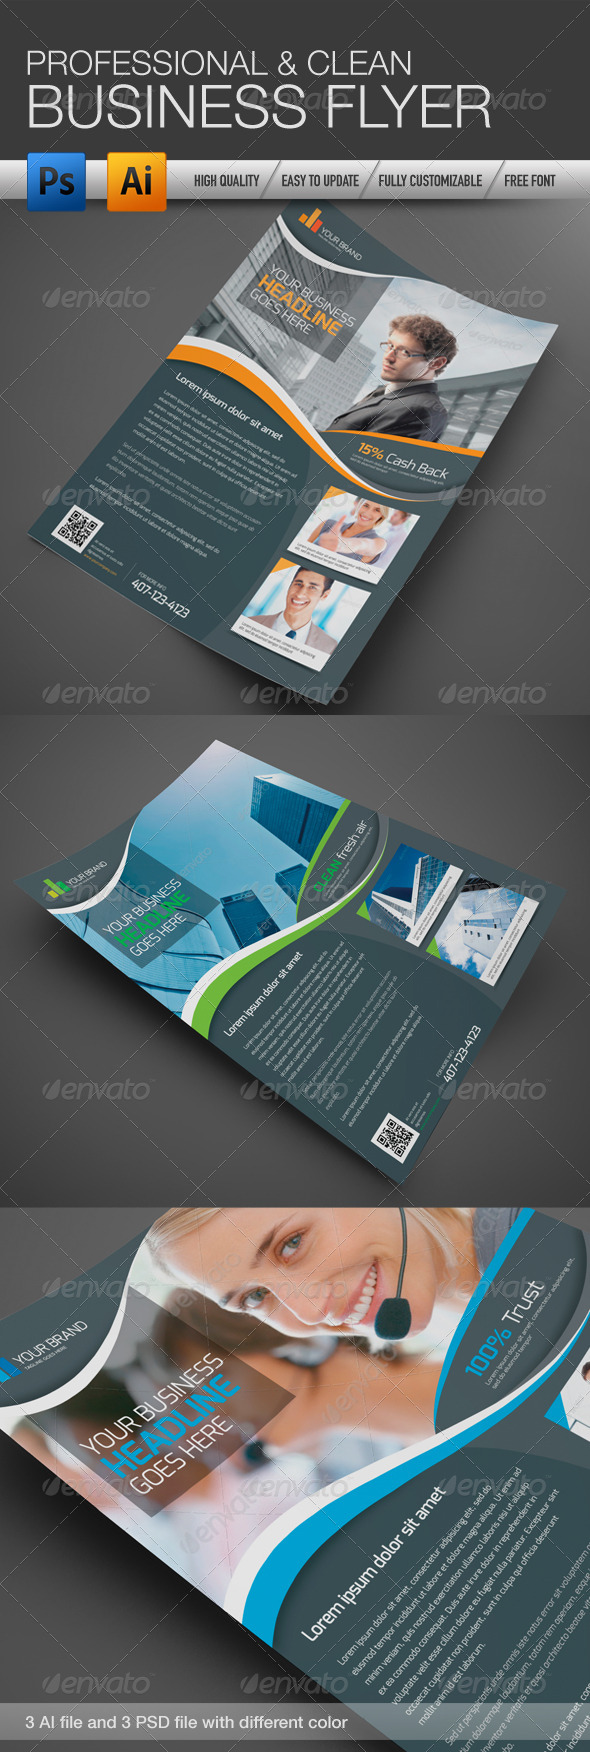 Professional and Clean Business Flyer - Corporate Flyers